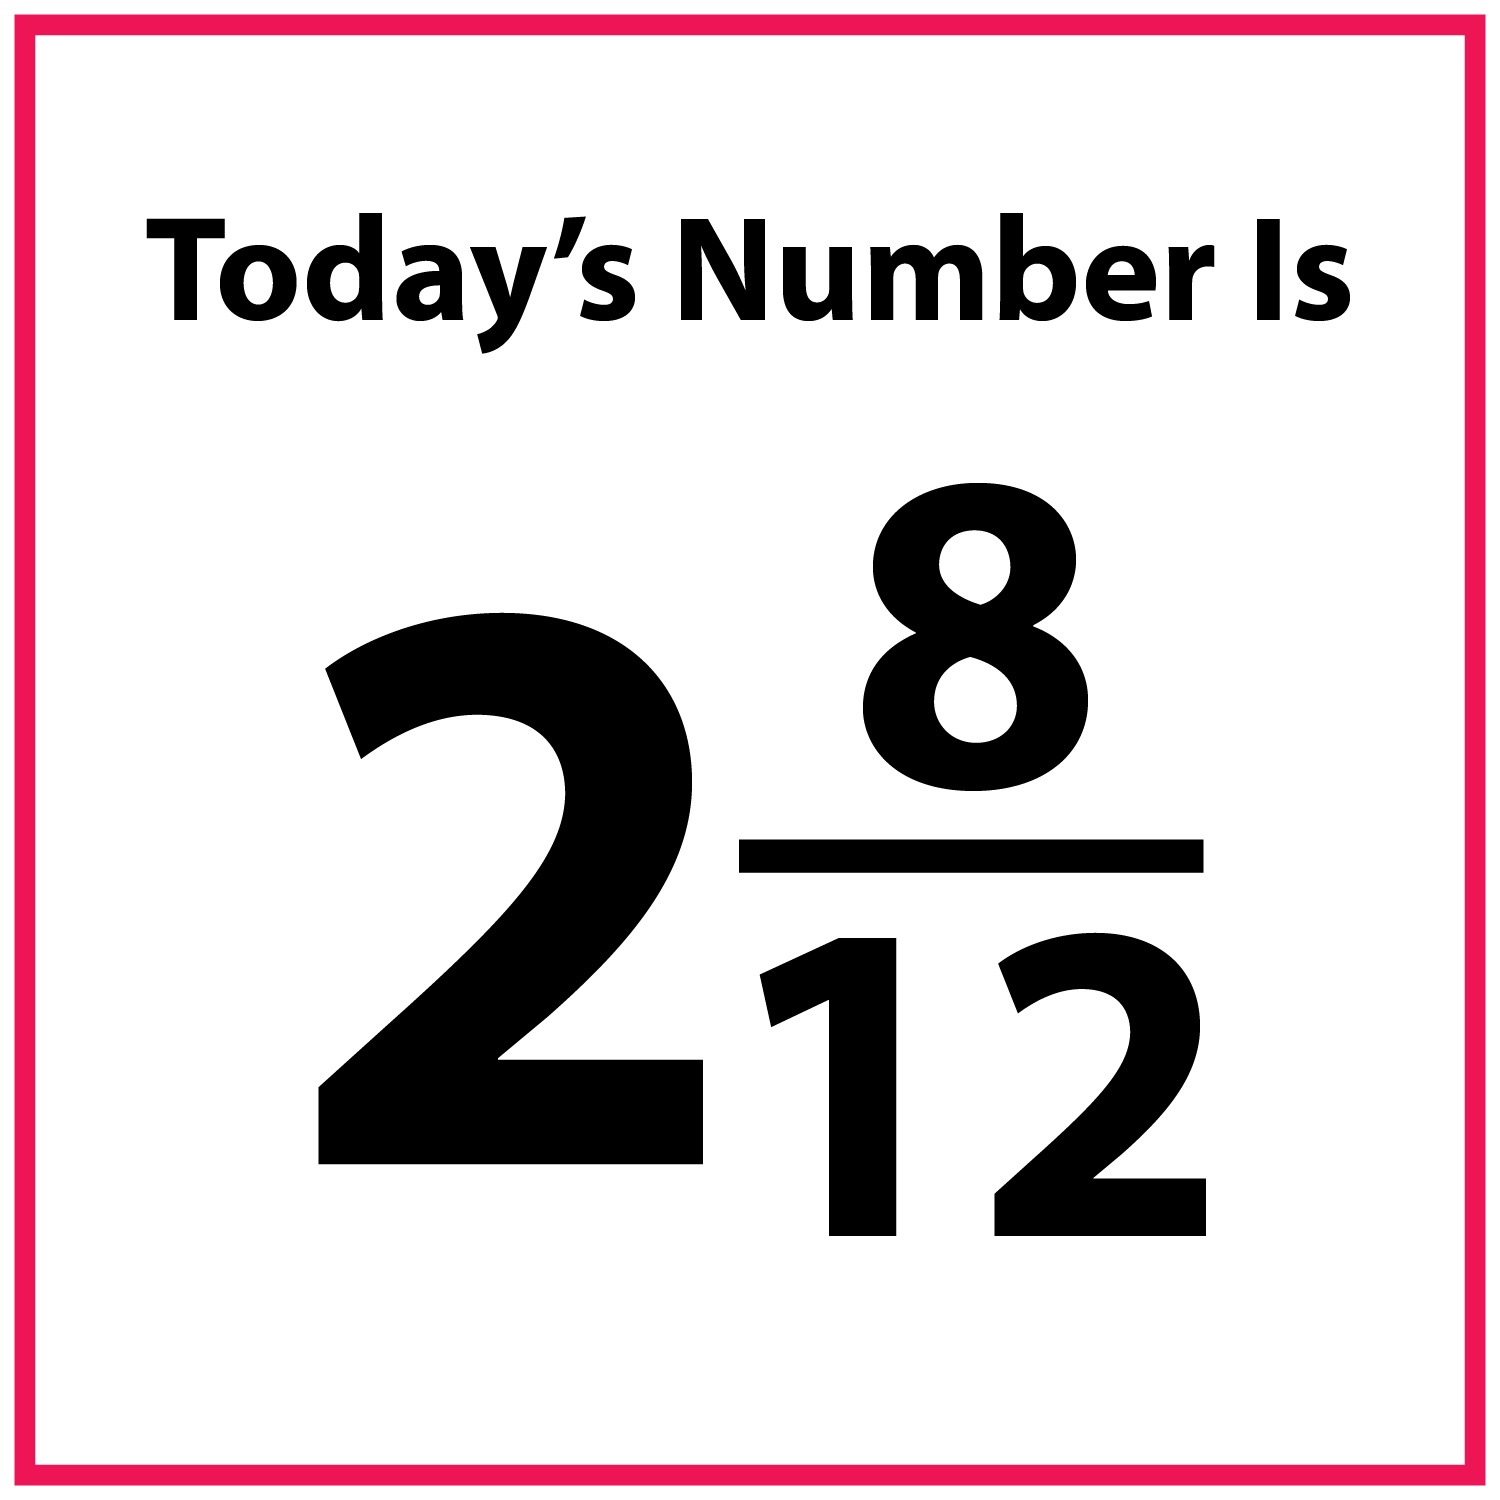 Today's number is 2 and 8 twelfths.